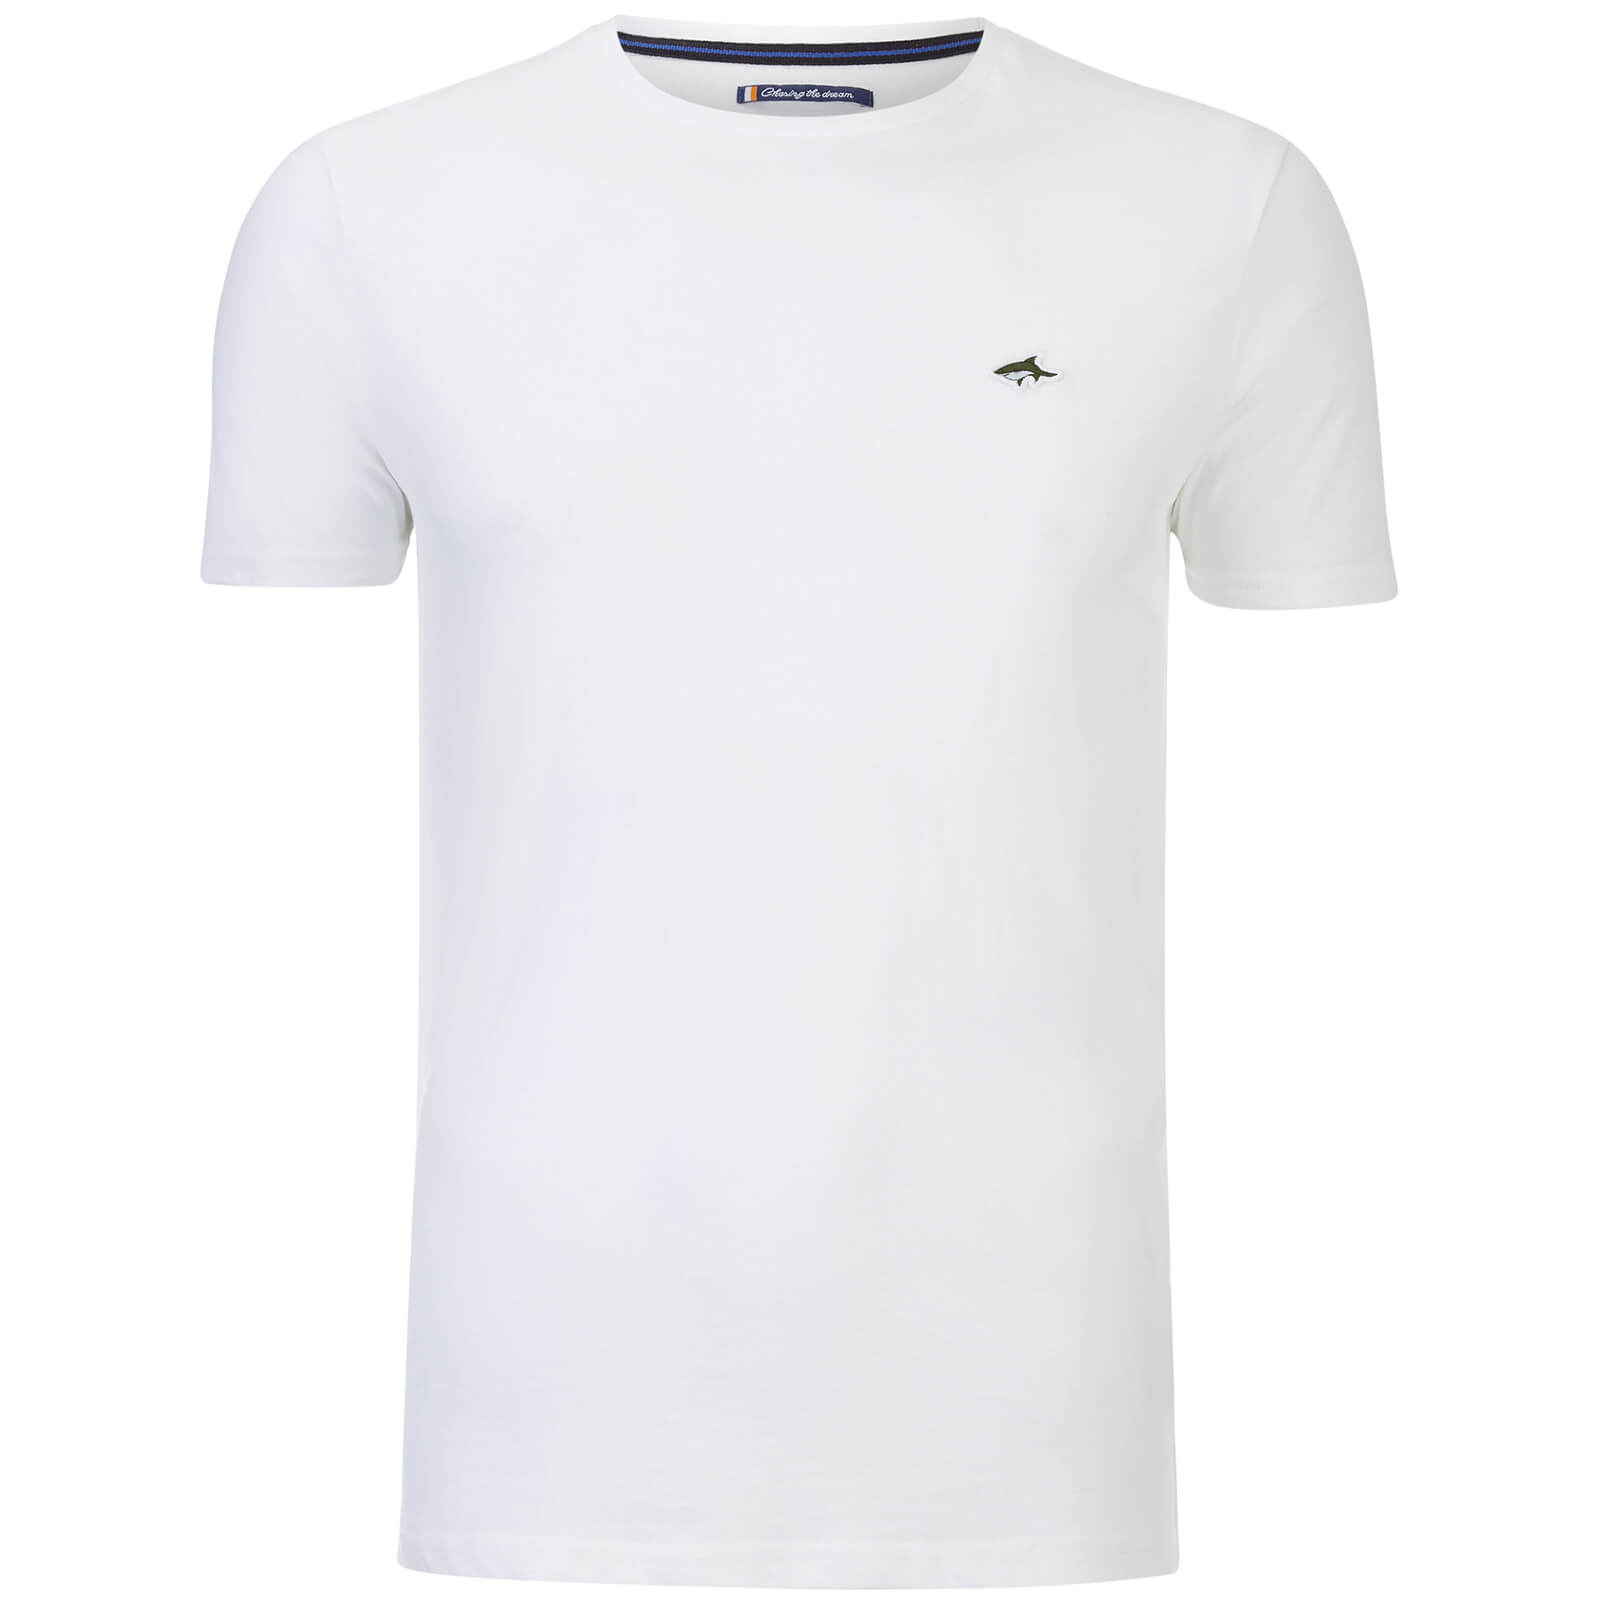 T-Shirt Homme Havelock Le Shark - Blanc